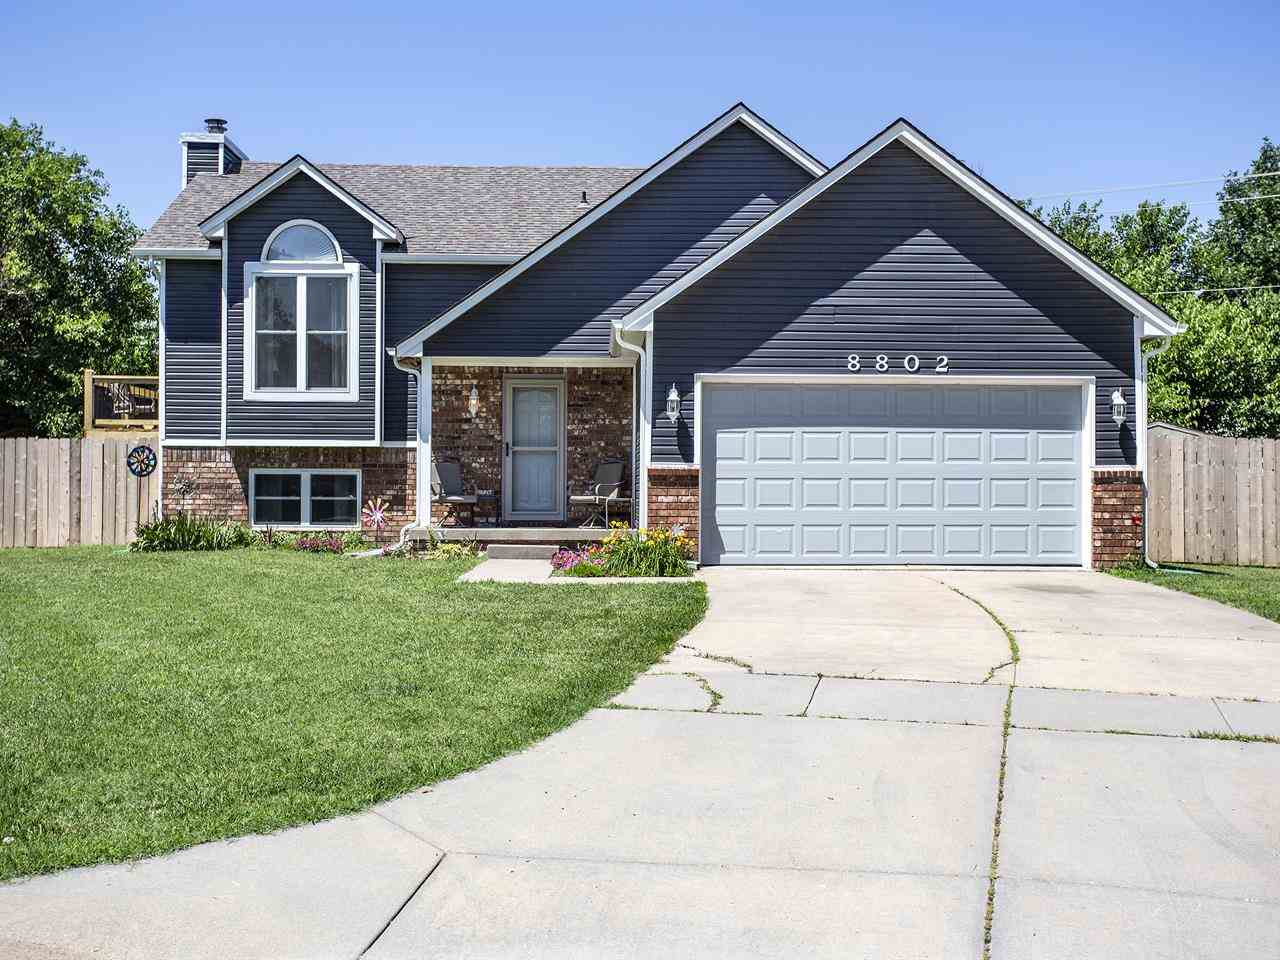 You have to see this spacious 4 bedroom 3 bath home in the Derby school district!  This lovely home